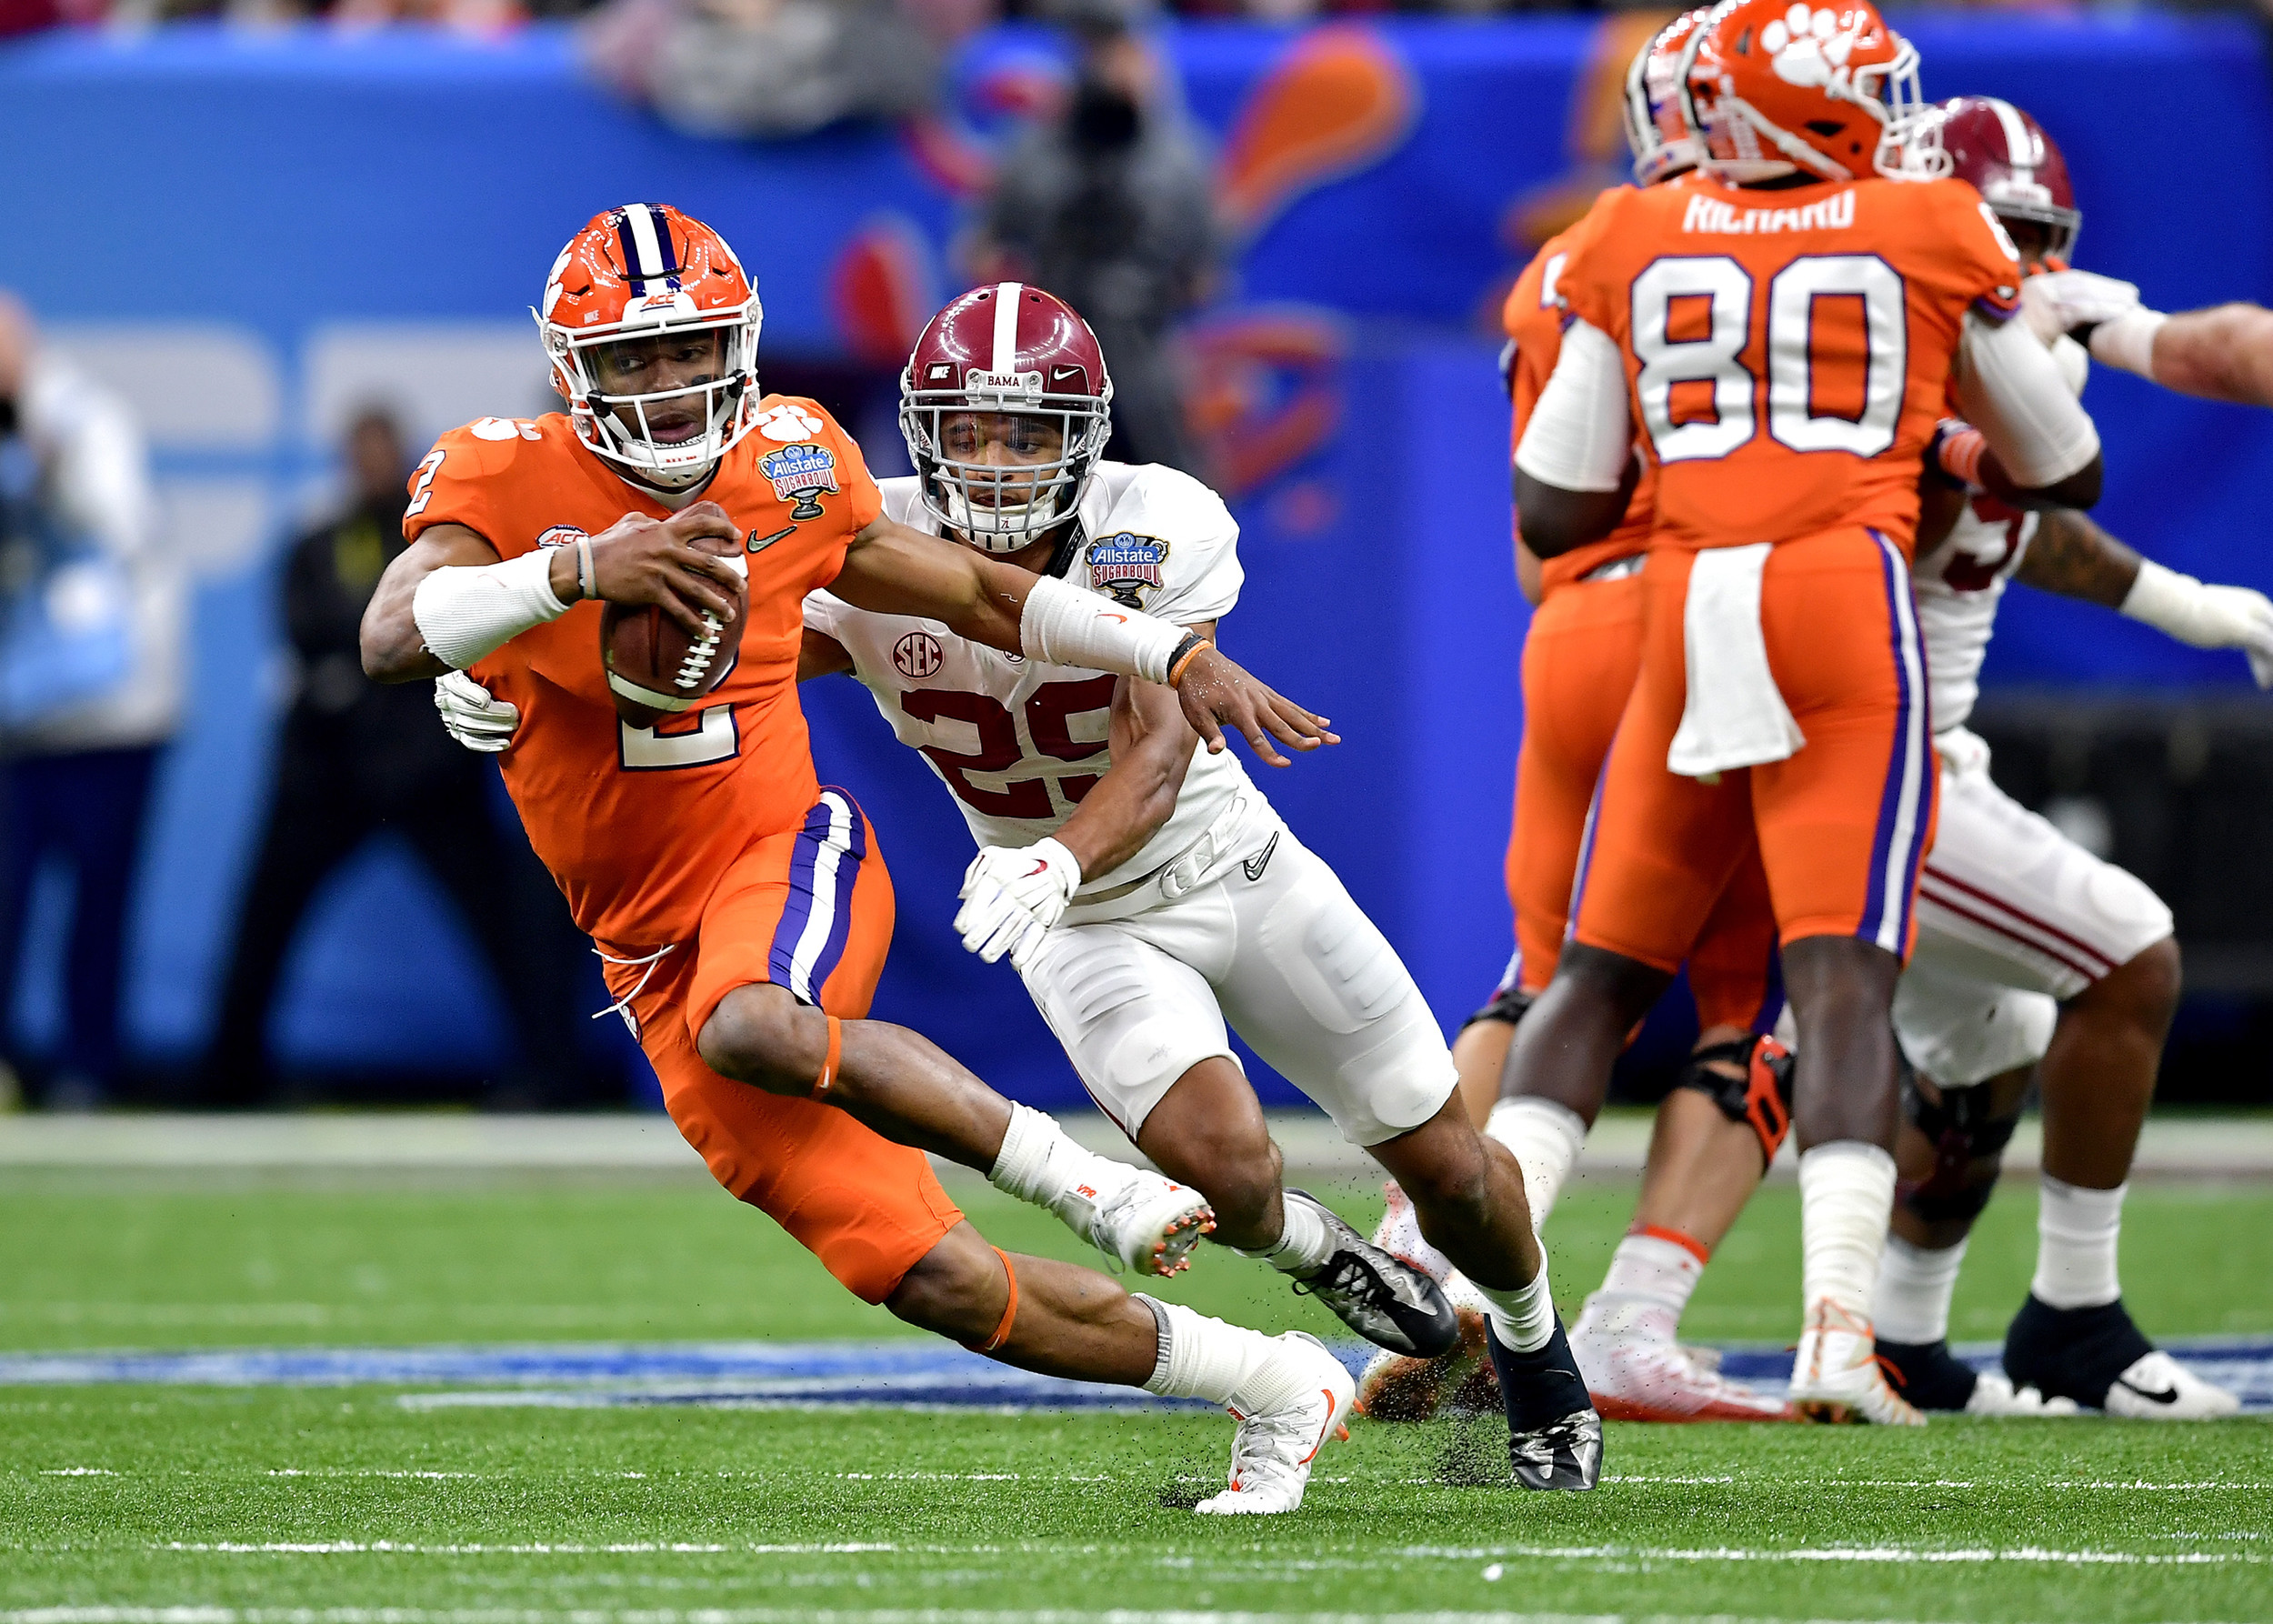 Clemson Tigers quarterback Kelly Bryant (2) scrambles under pressure from Alabama Crimson Tide defensive back Minkah Fitzpatrick (29) in the first half of the 2018 AllState Sugar Bowl on Jan. 1, 2018, at the Mercedes-Benz SuperDome in New Orleans, La. Alabama won the game 24-6. (Photo by Lee Walls)